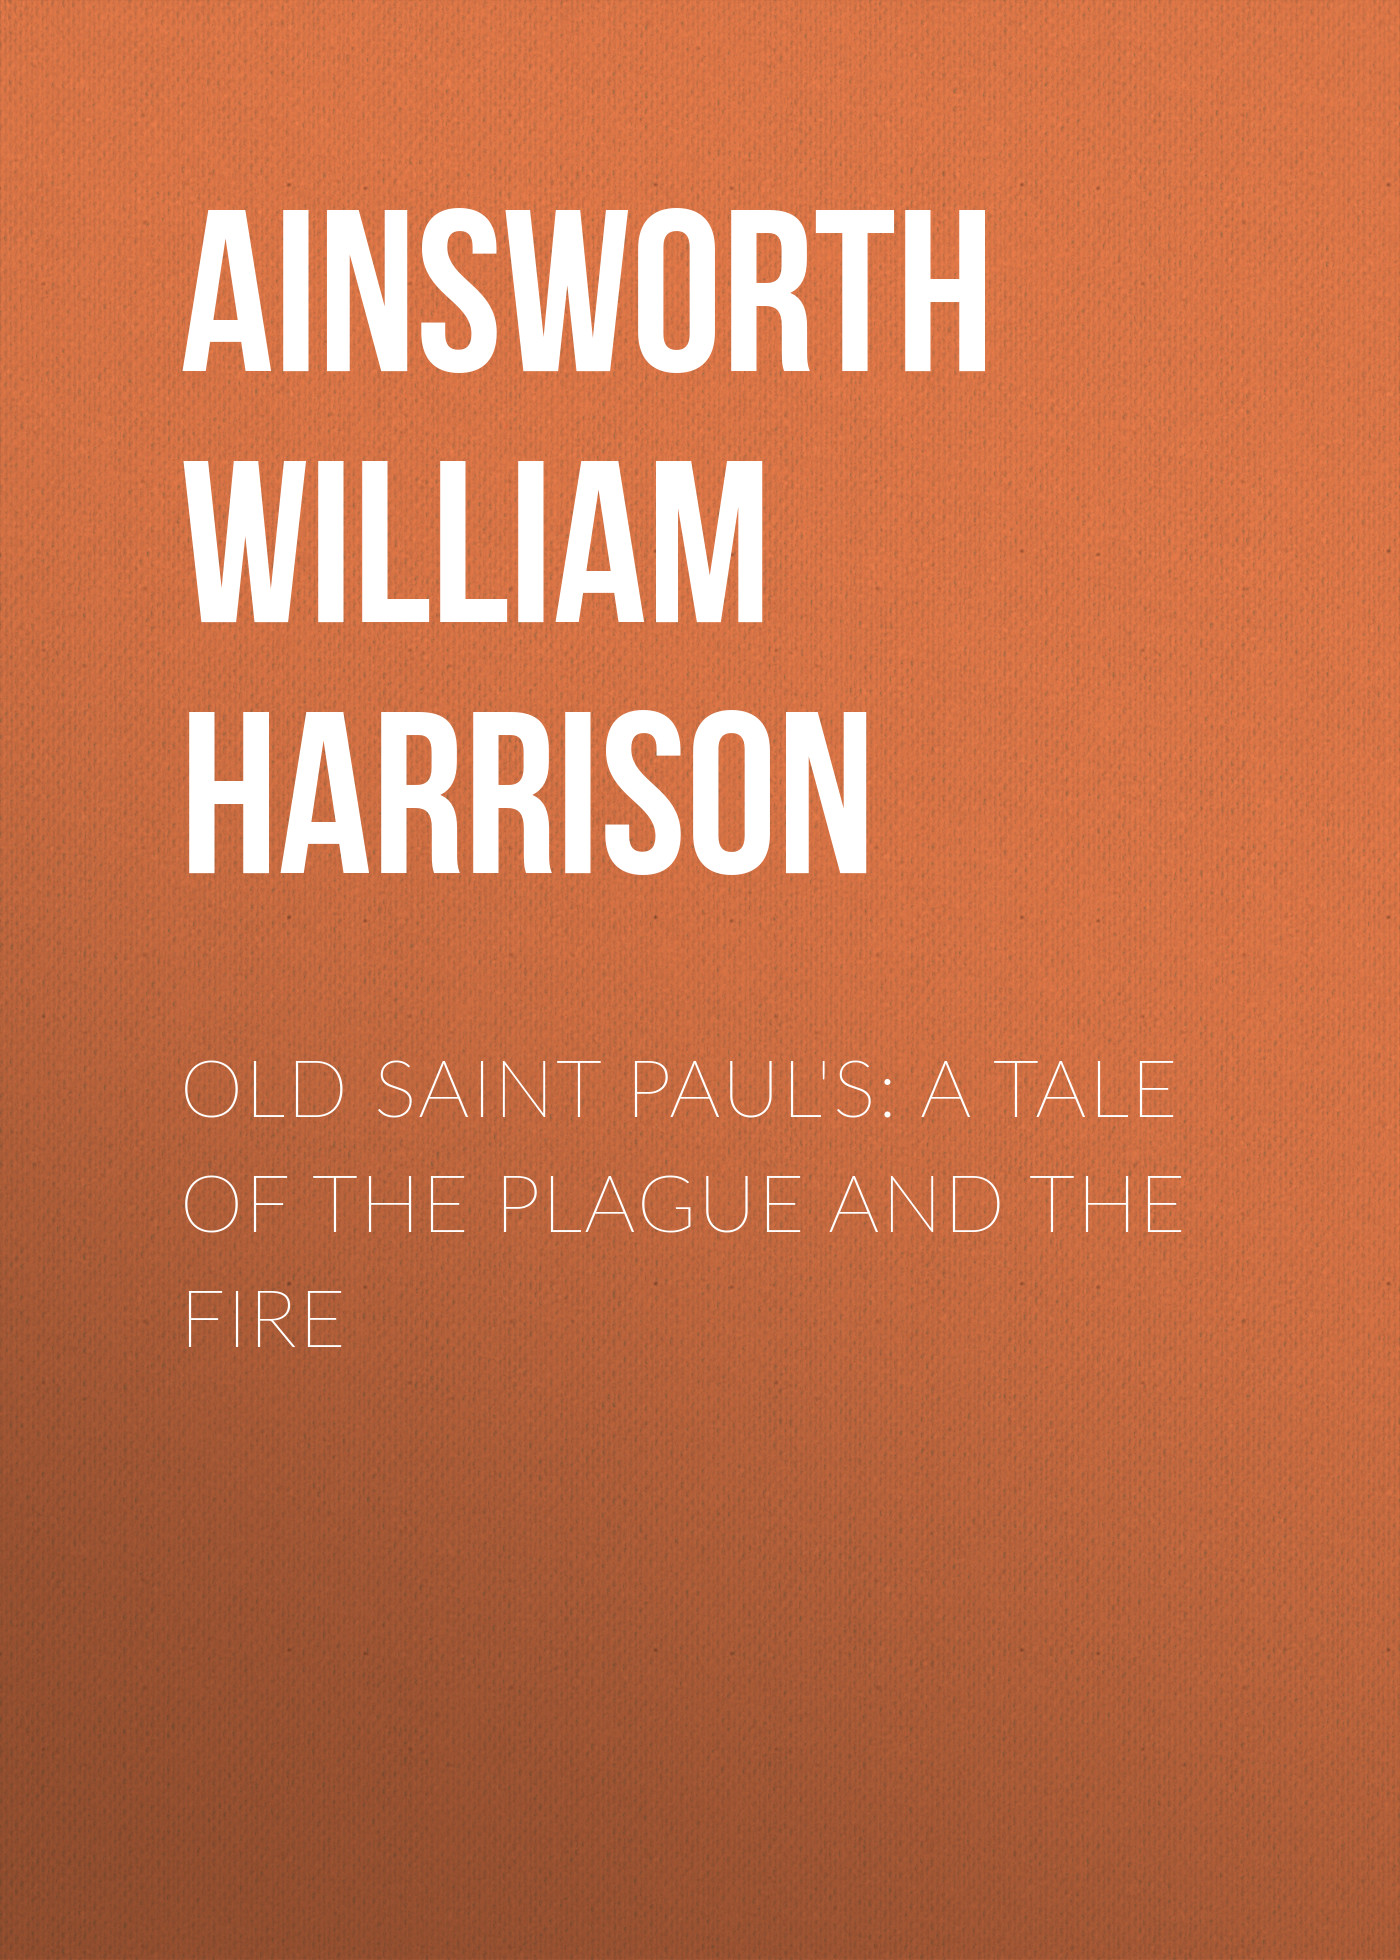 Ainsworth William Harrison Old Saint Paul's: A Tale of the Plague and the Fire ainsworth william harrison the star chamber an historical romance volume 1